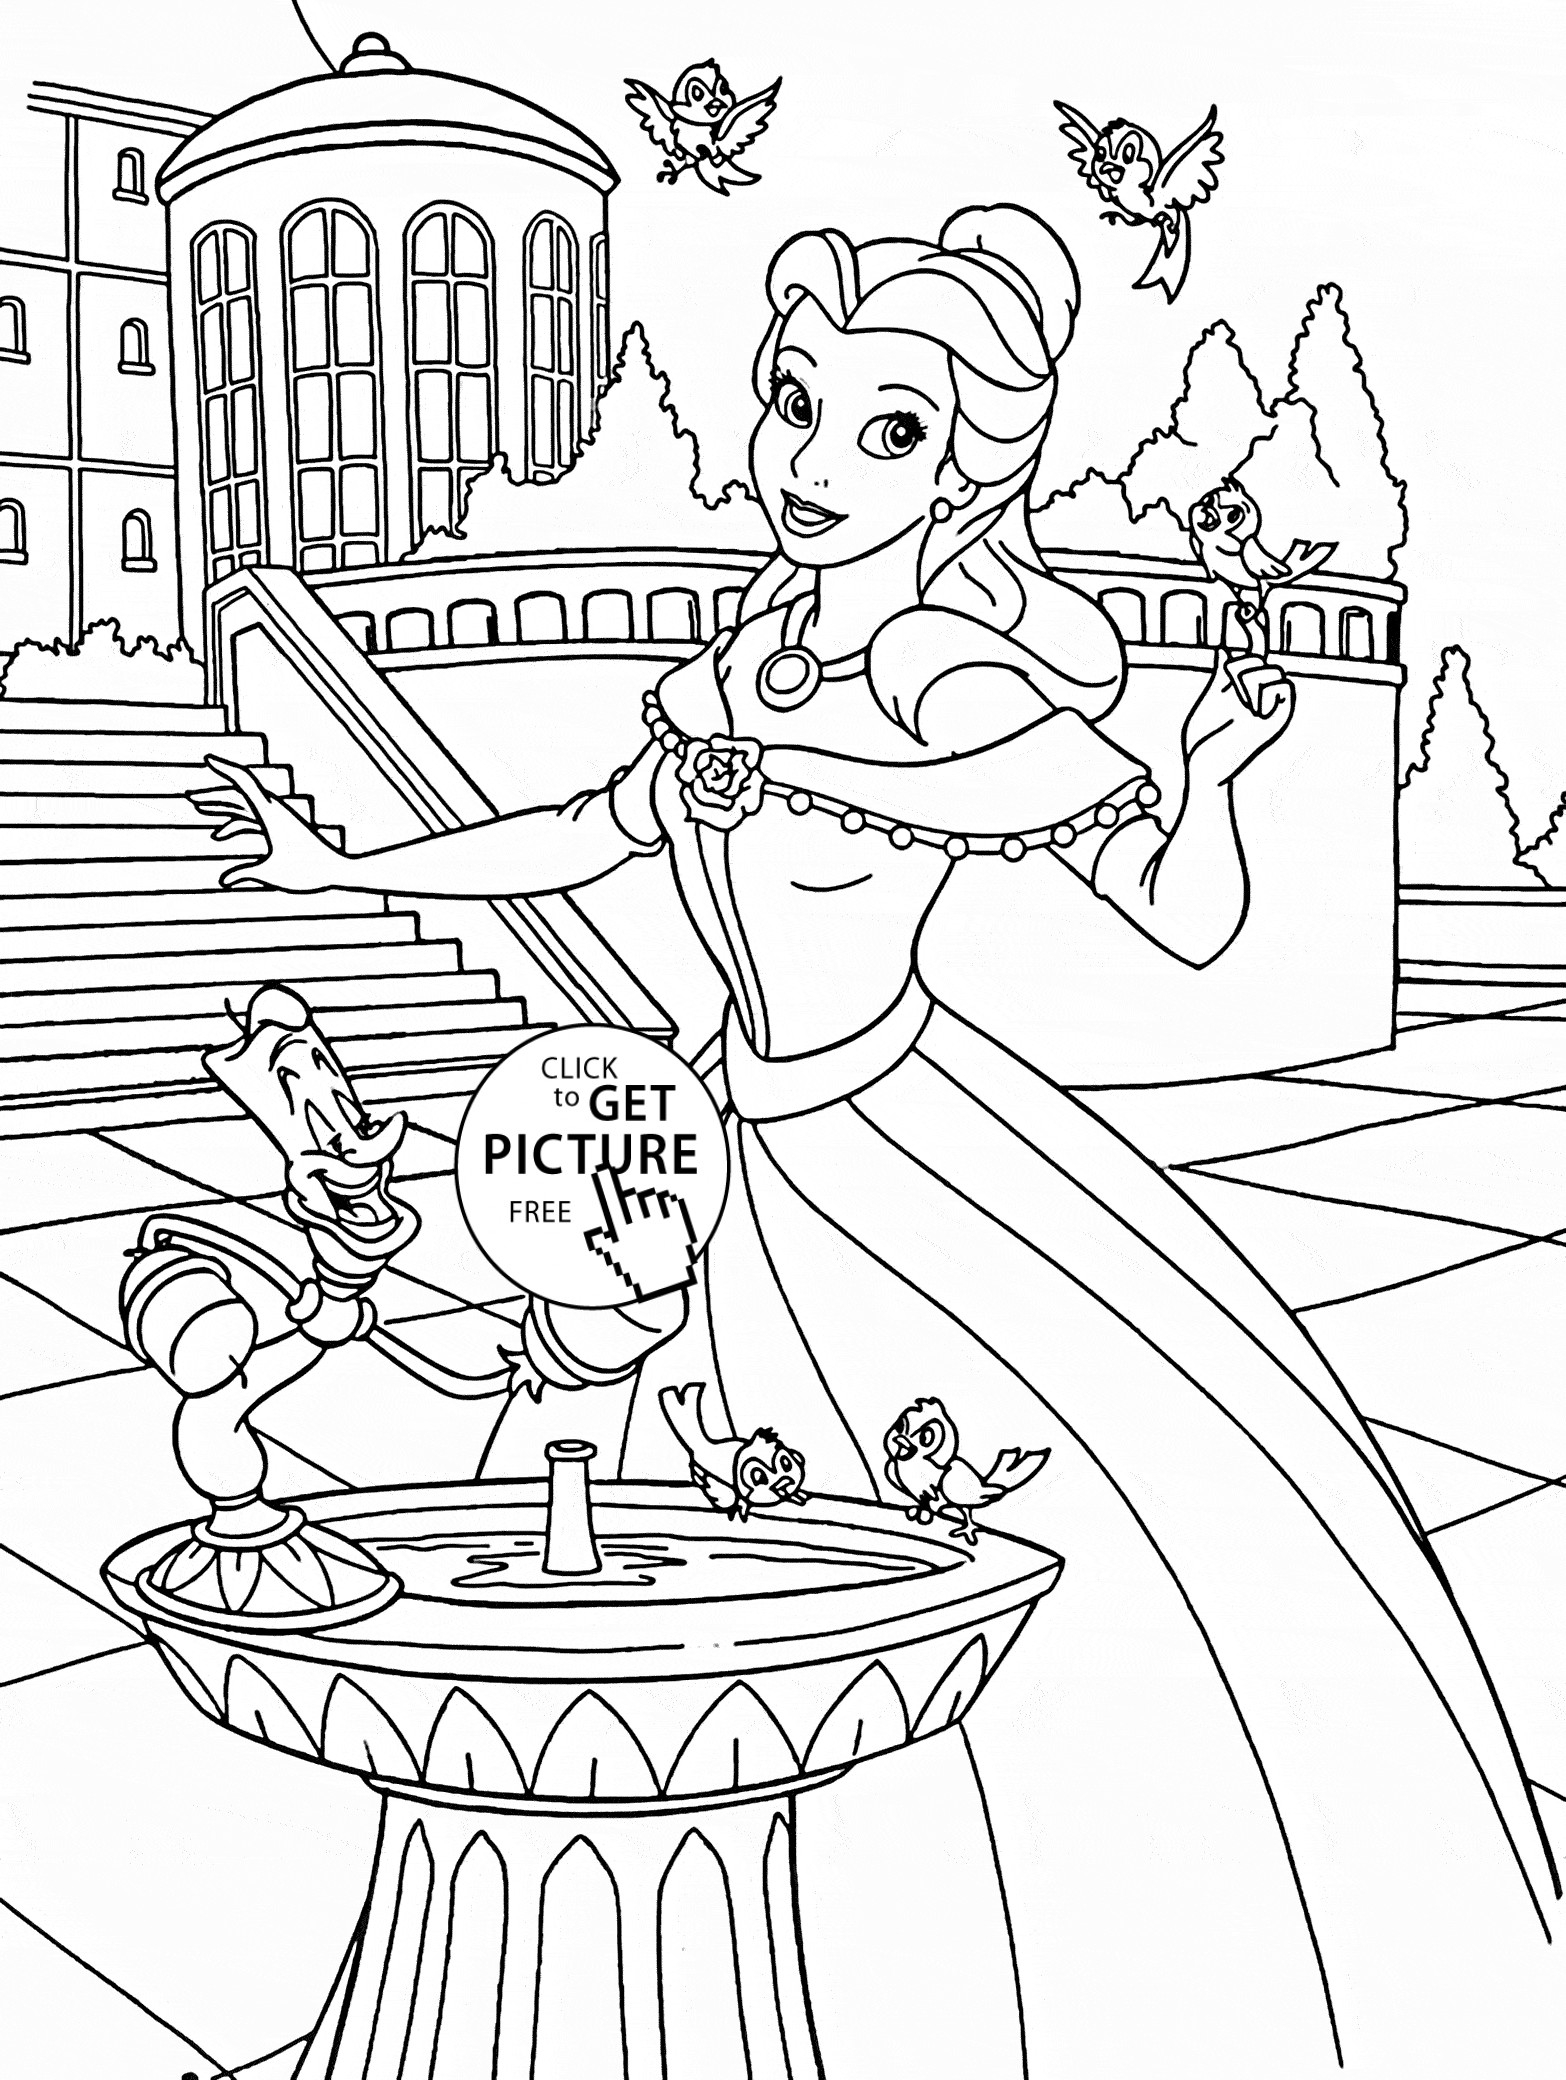 Wallpaper Coloring Pages  Download 4d - To print for your project